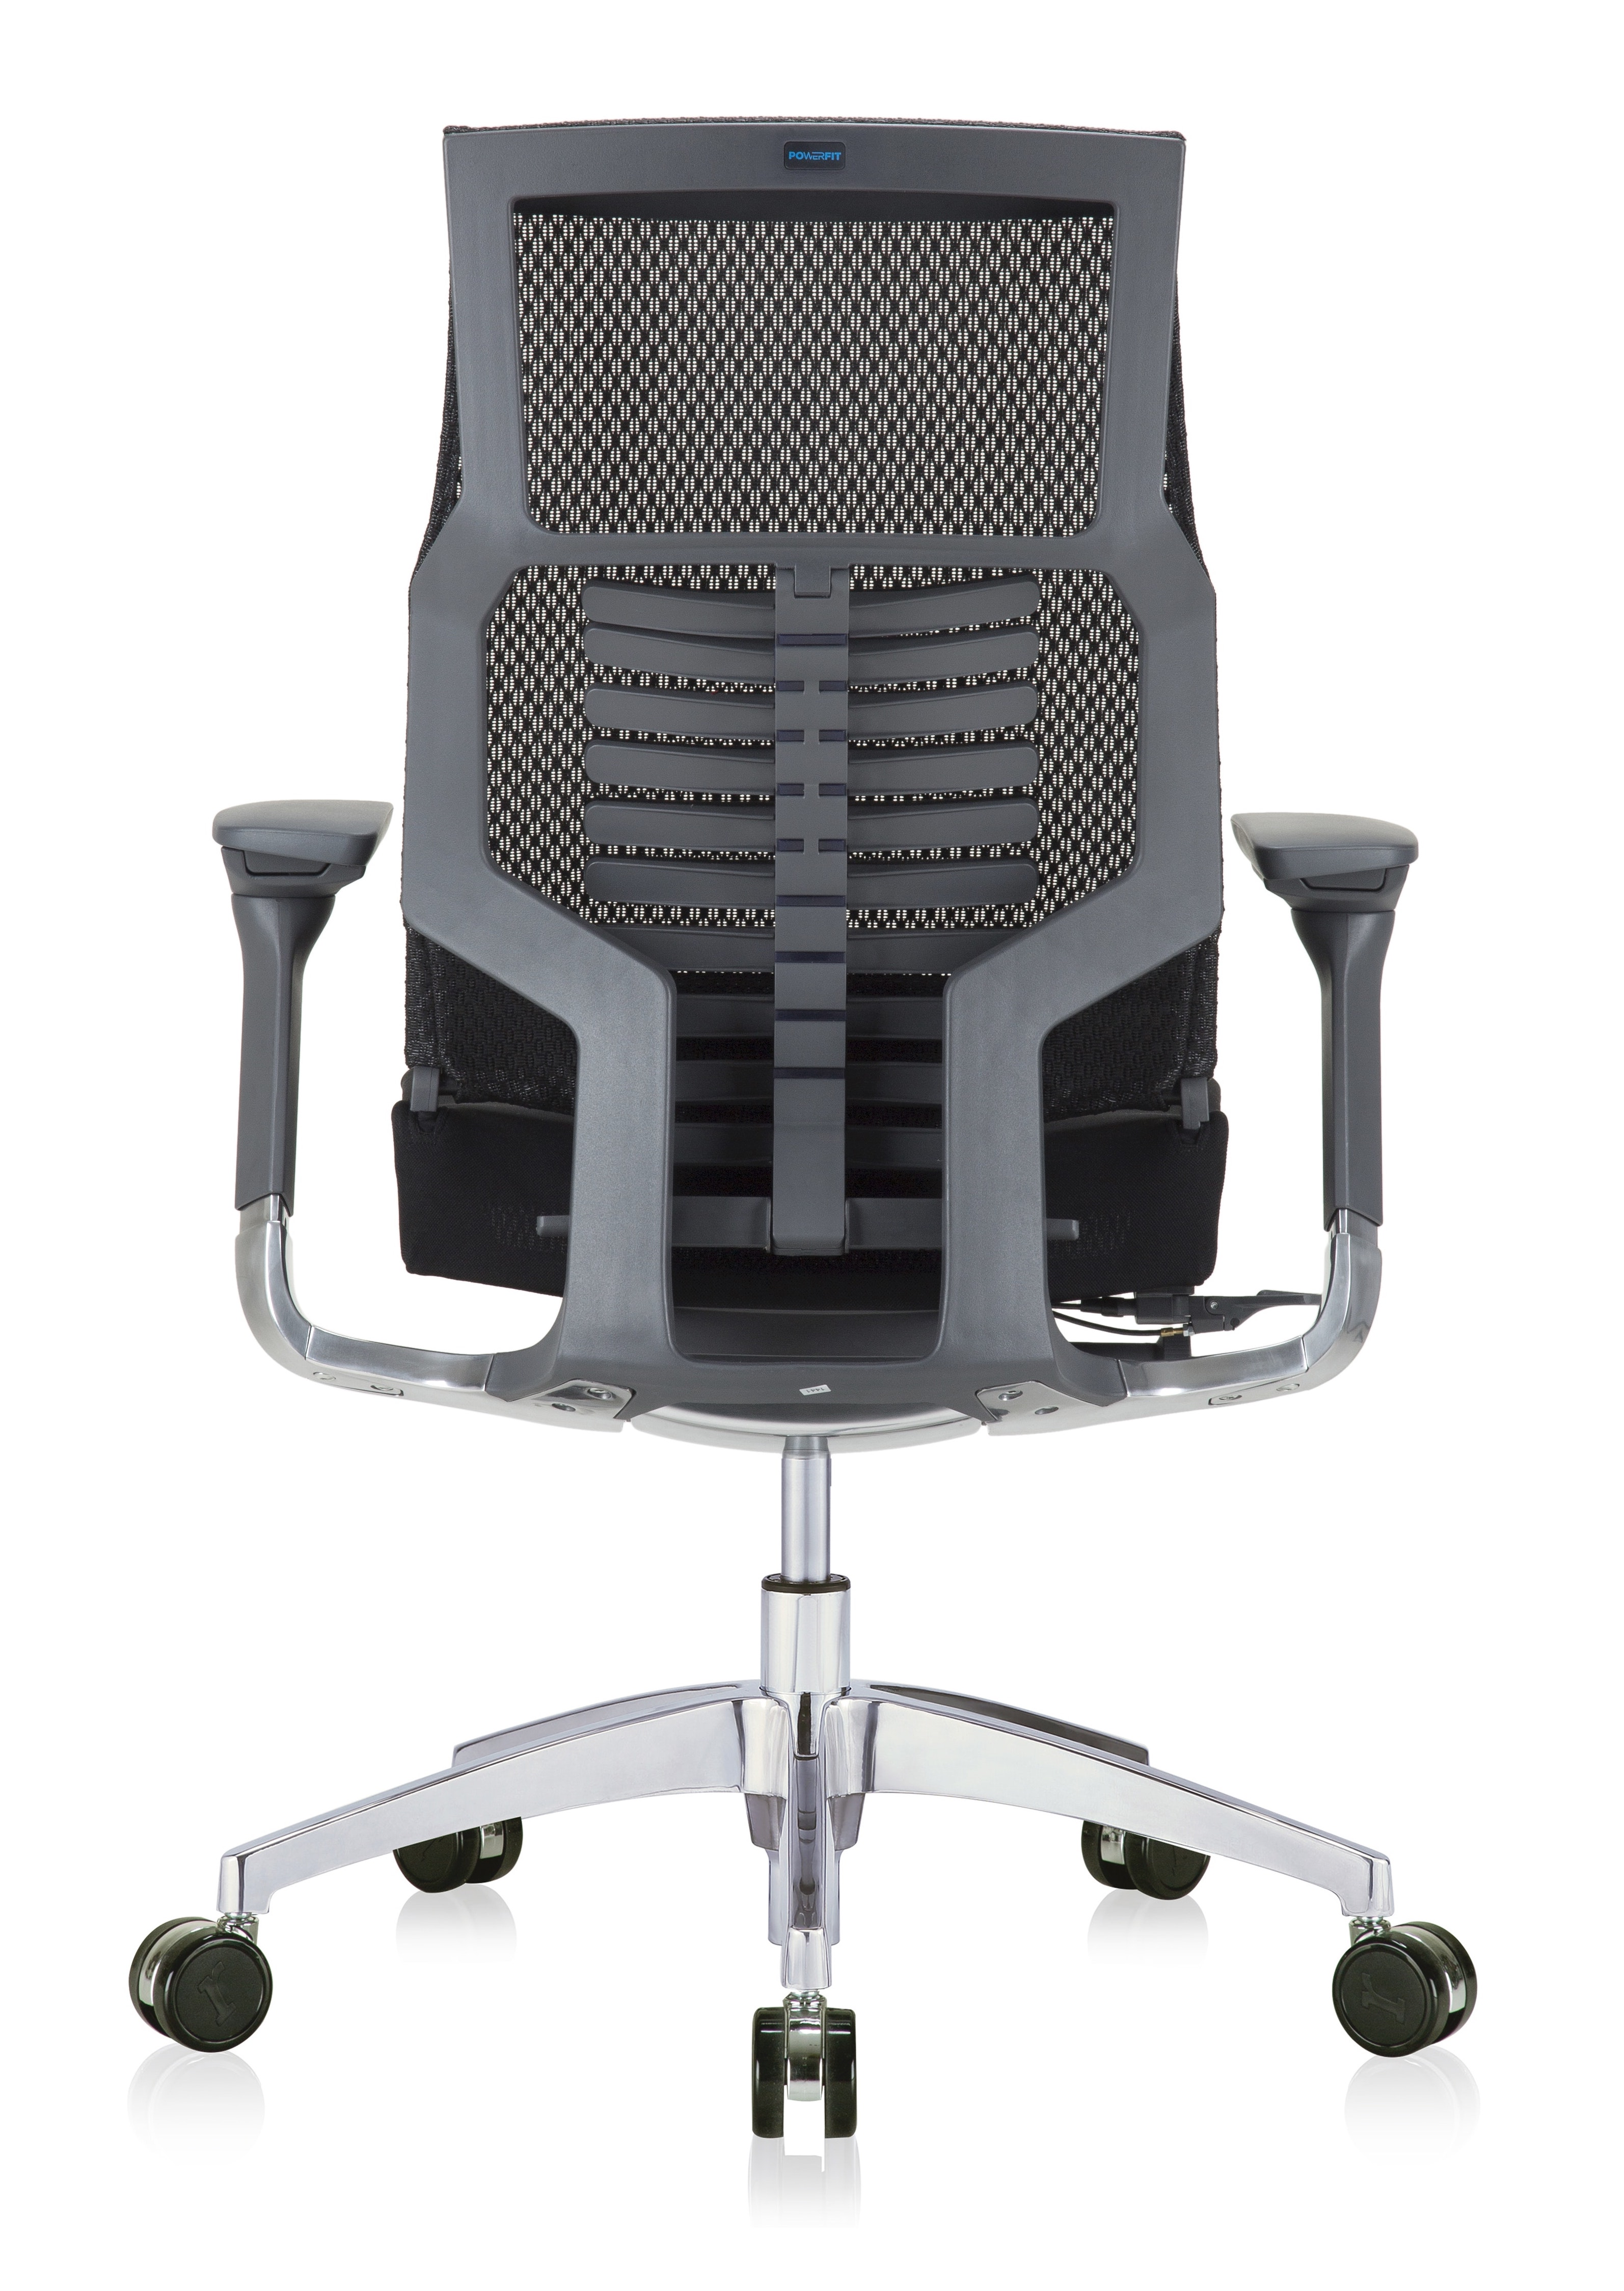 eurotech powerfit chair - back view